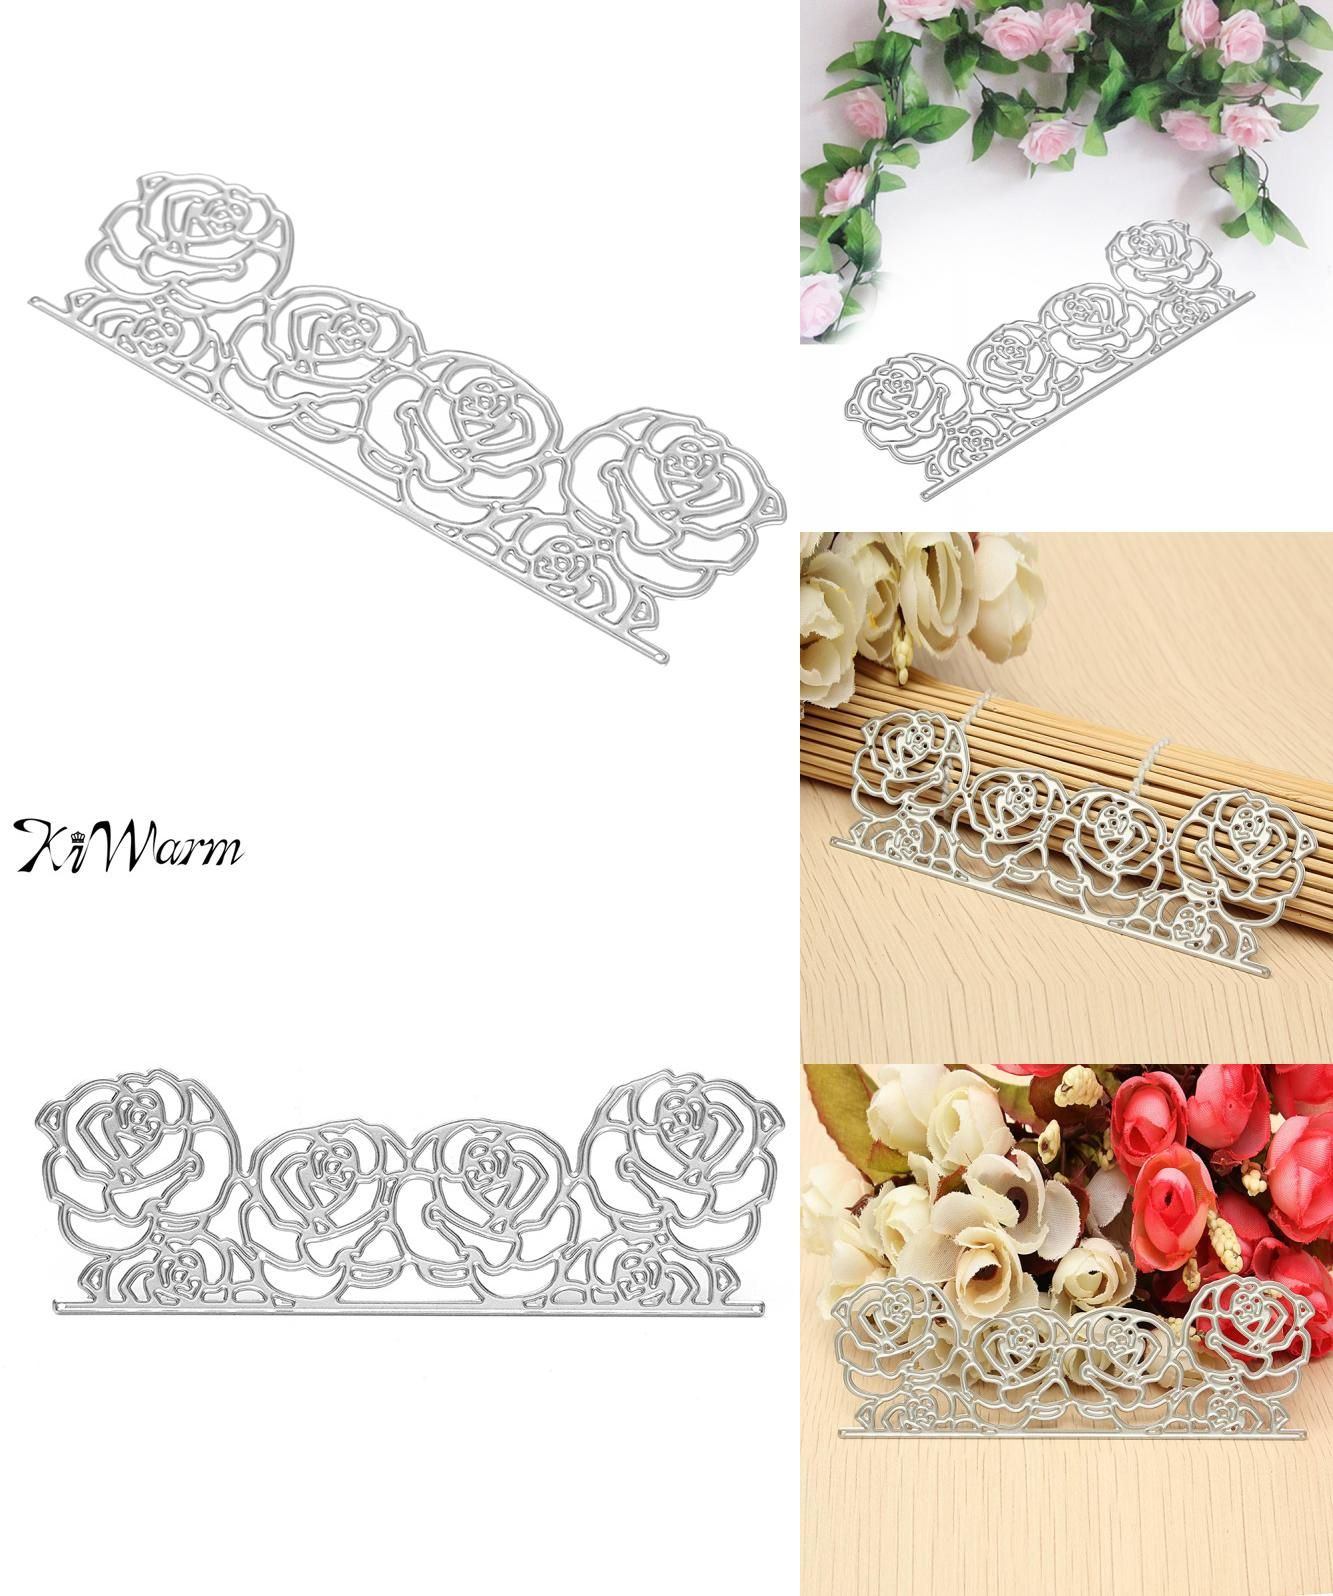 Visit To Buy Kiwarm Rose Lace Cutting Dies Stencils Template